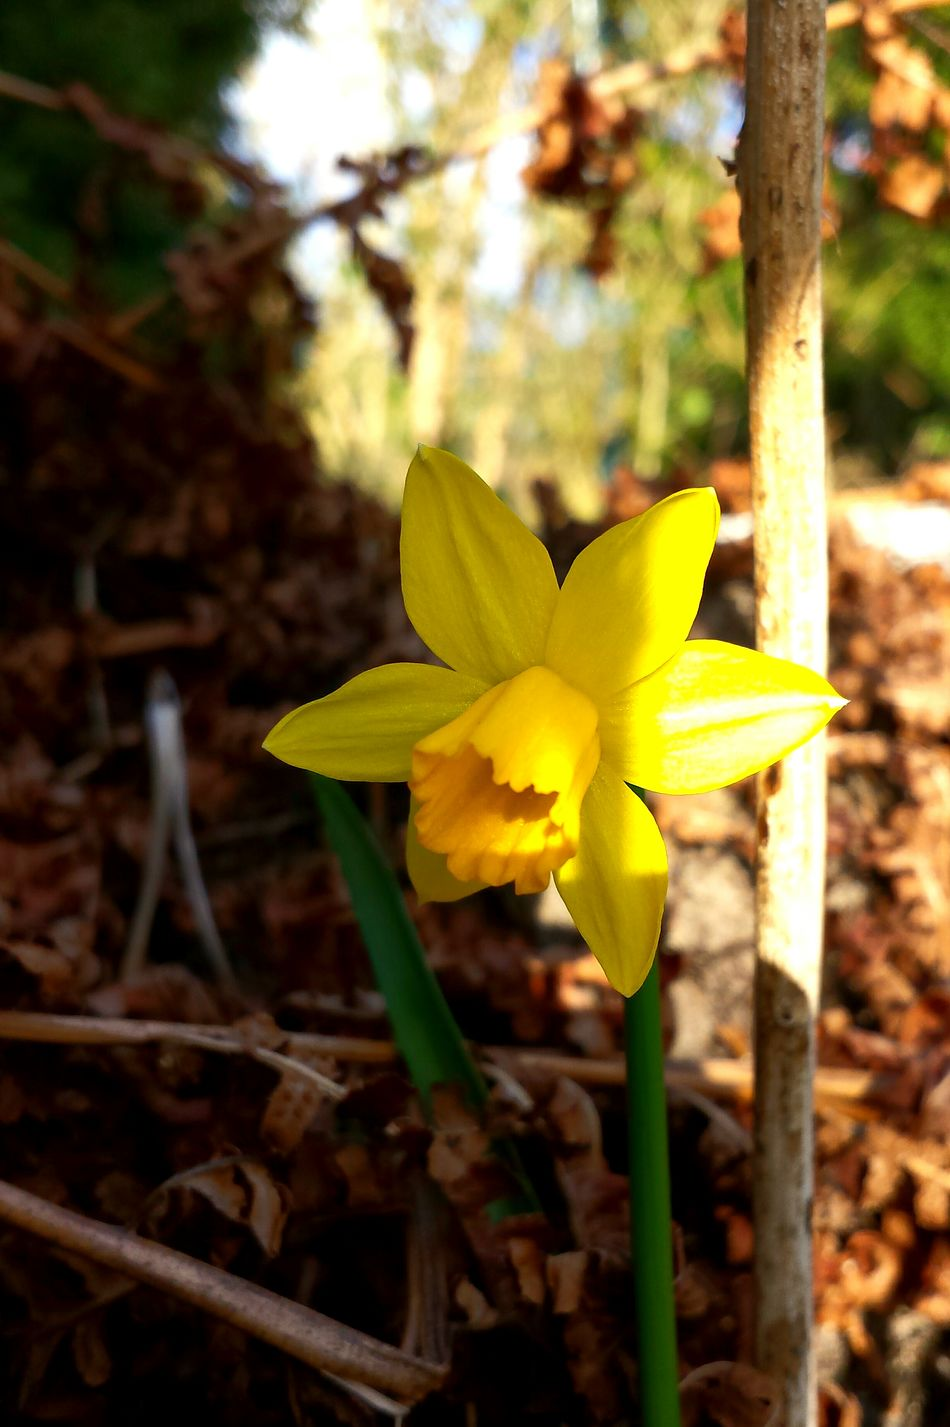 Osterglocke Bokeh Yellow Flower Nature Photography Flower Collection Flower Porn Flowers, Nature And Beauty Flower Power Easter Ready Easter Flowers Daffodil Daffodils Reaching For The Sun Daffodils, Spring, Delicate, Sky View, Garden, Blooms, Yellow, Cream, Pastel, Petals Daffodils In The Sun Close-up Beautiful Nature Spring Flowers Spring Into Spring Spring Dry Leaves - Fresh Nature Ladyphotographerofthemonth Spring Time Ostern Naht Unaufhaltsam ... Nature Awakens Here Belongs To Me Urban Spring Fever